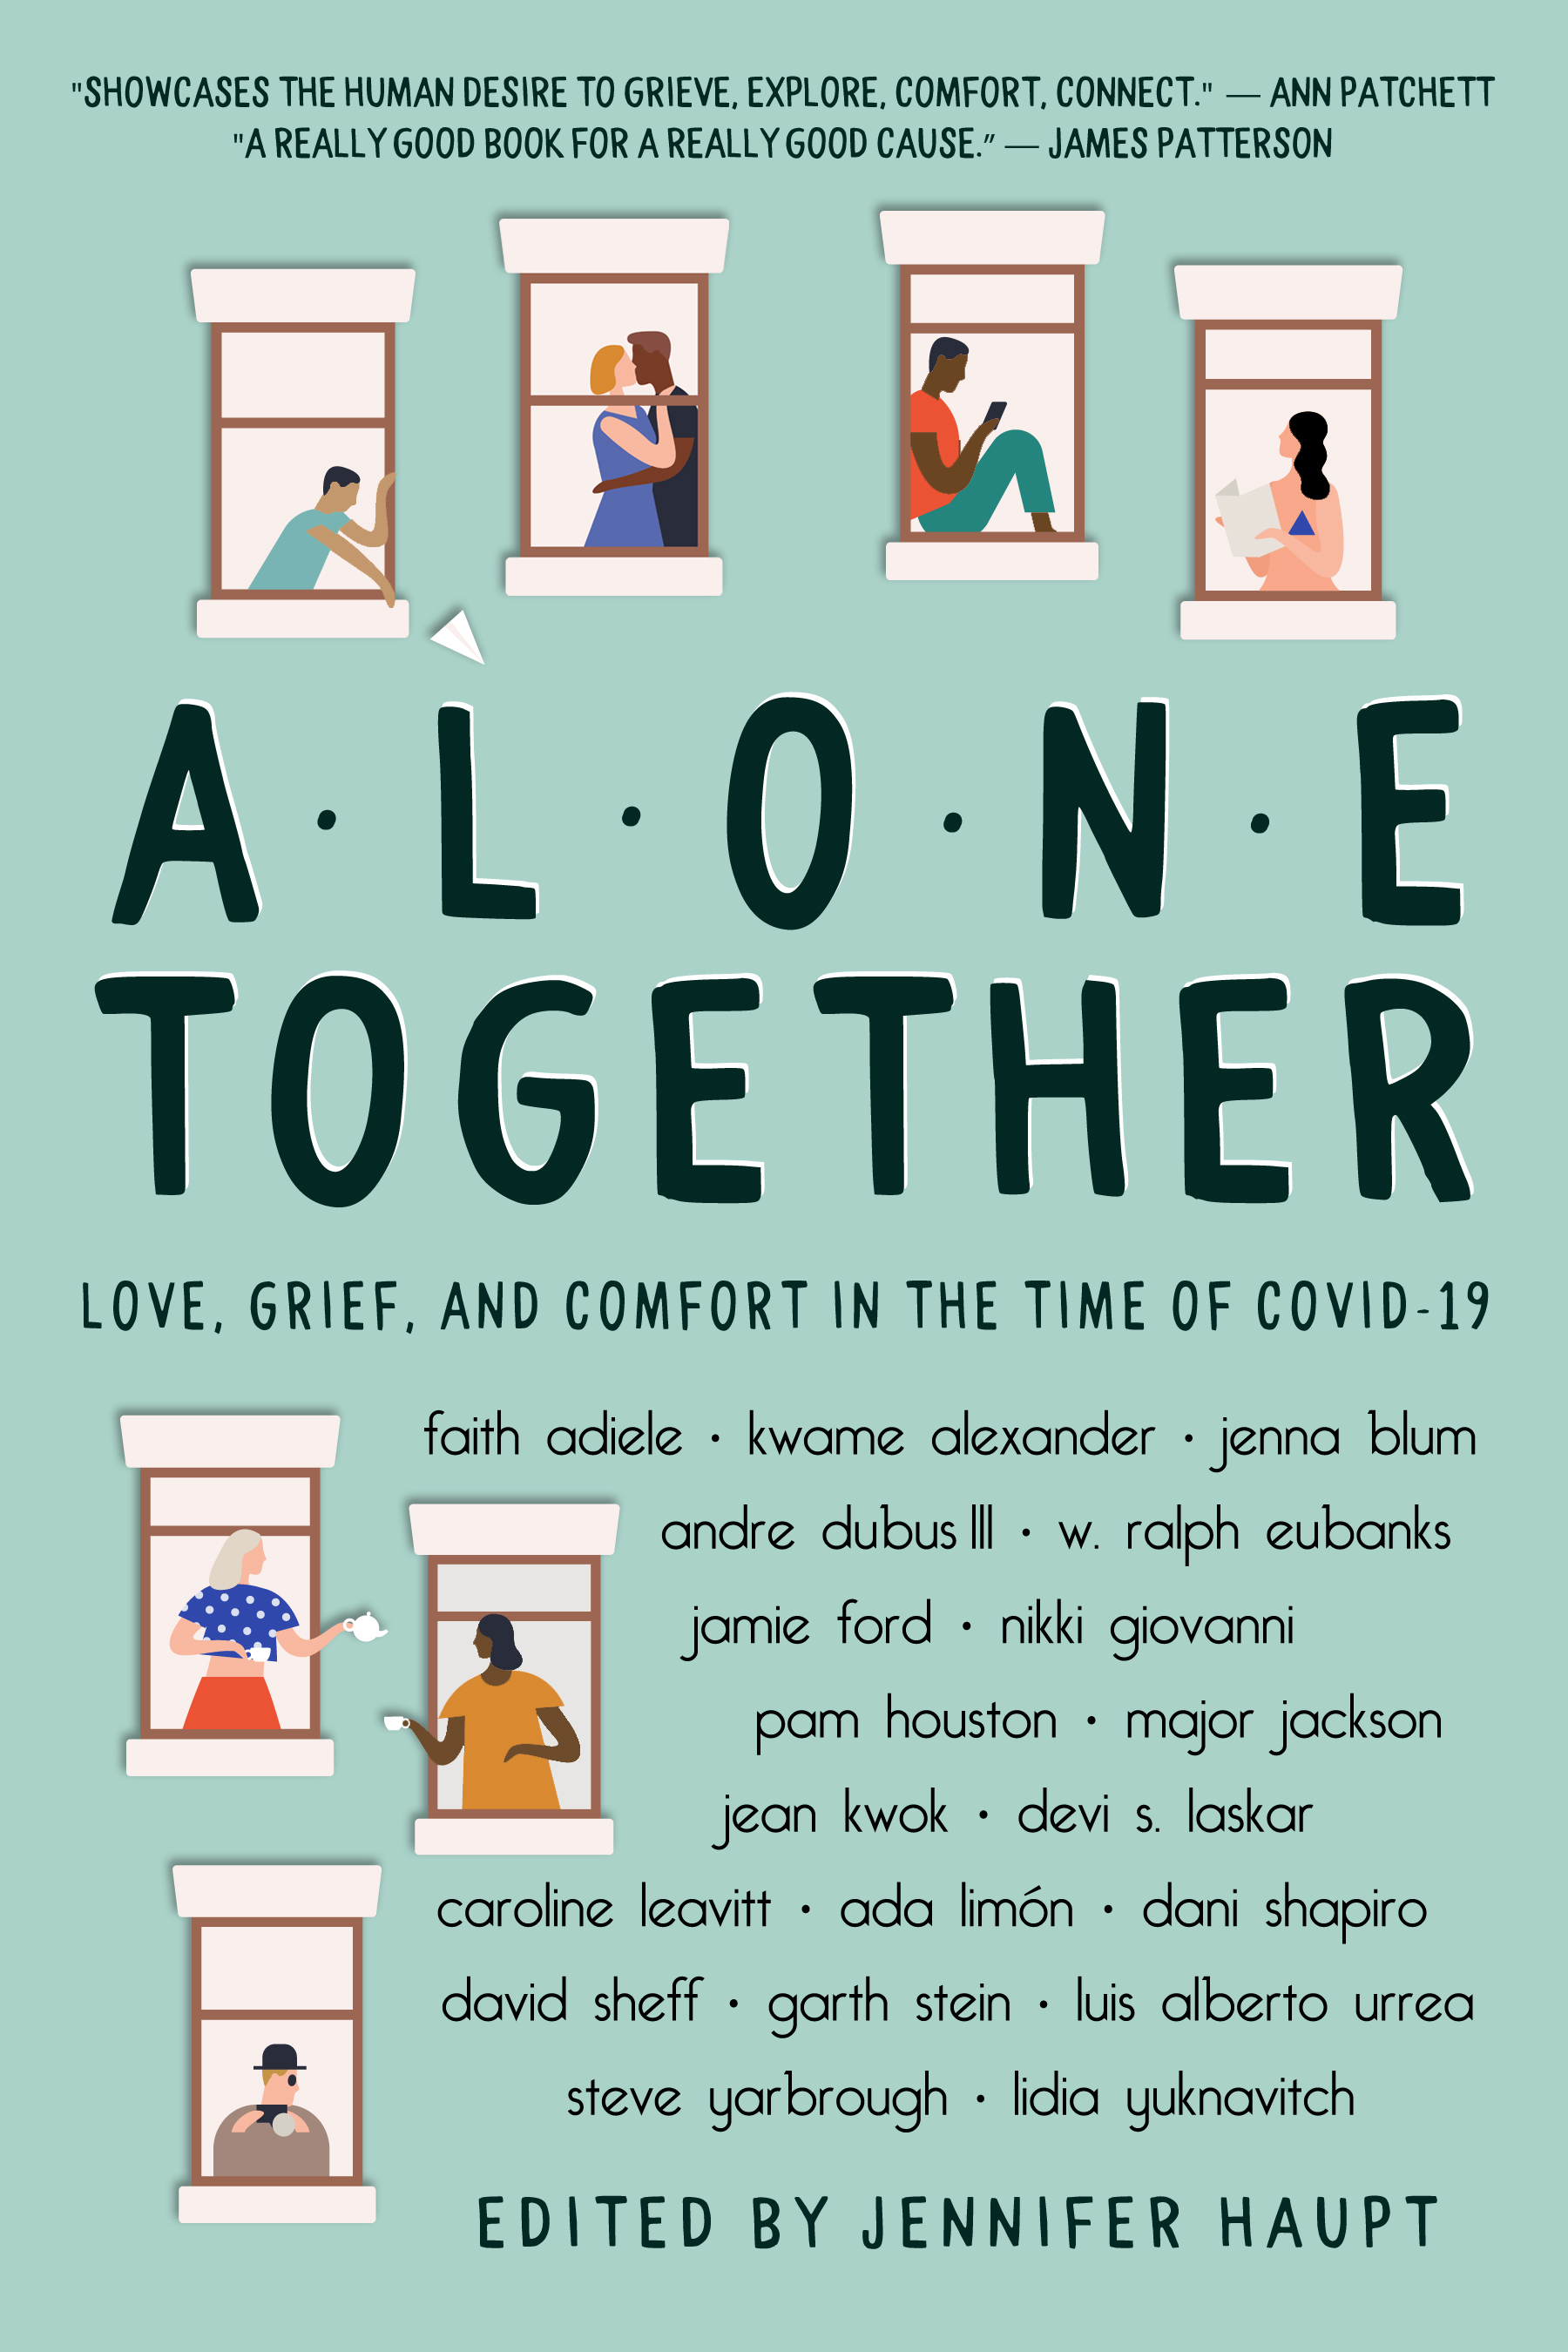 Alone Together: Love, Grief, and Comfort in the Time of COVID-19 by Jennifer Haupt